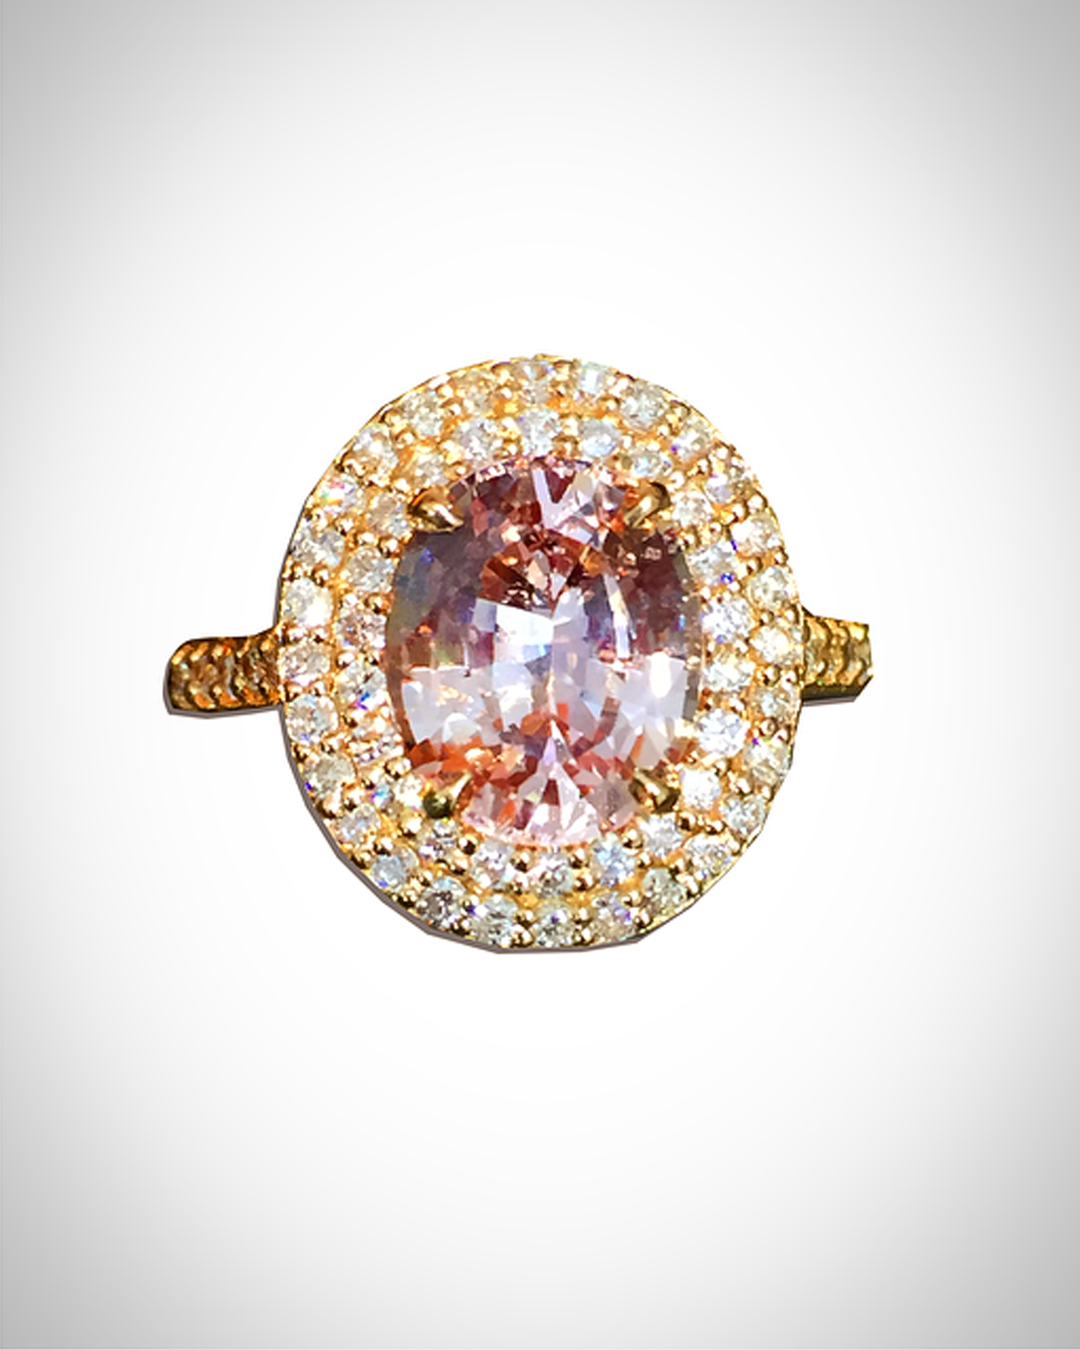 This peachy pink padparadscha sapphire engagement ring will make you